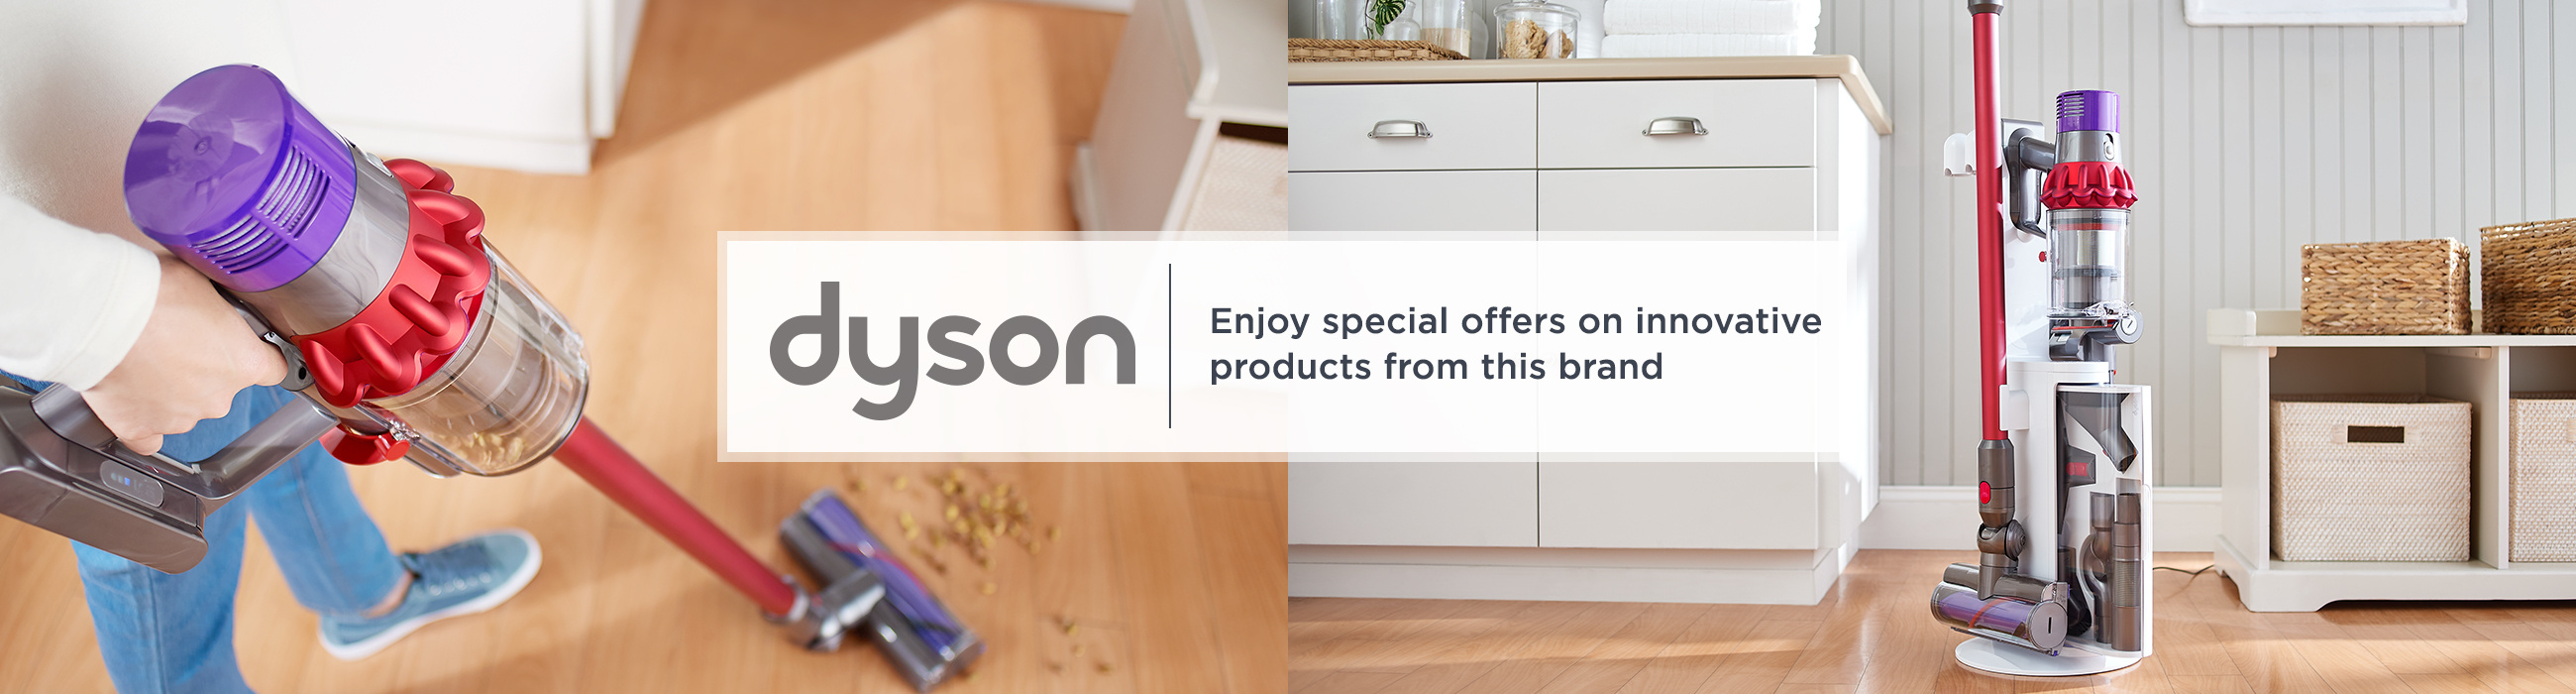 Dyson. Enjoy special offers on innovative products from this brand